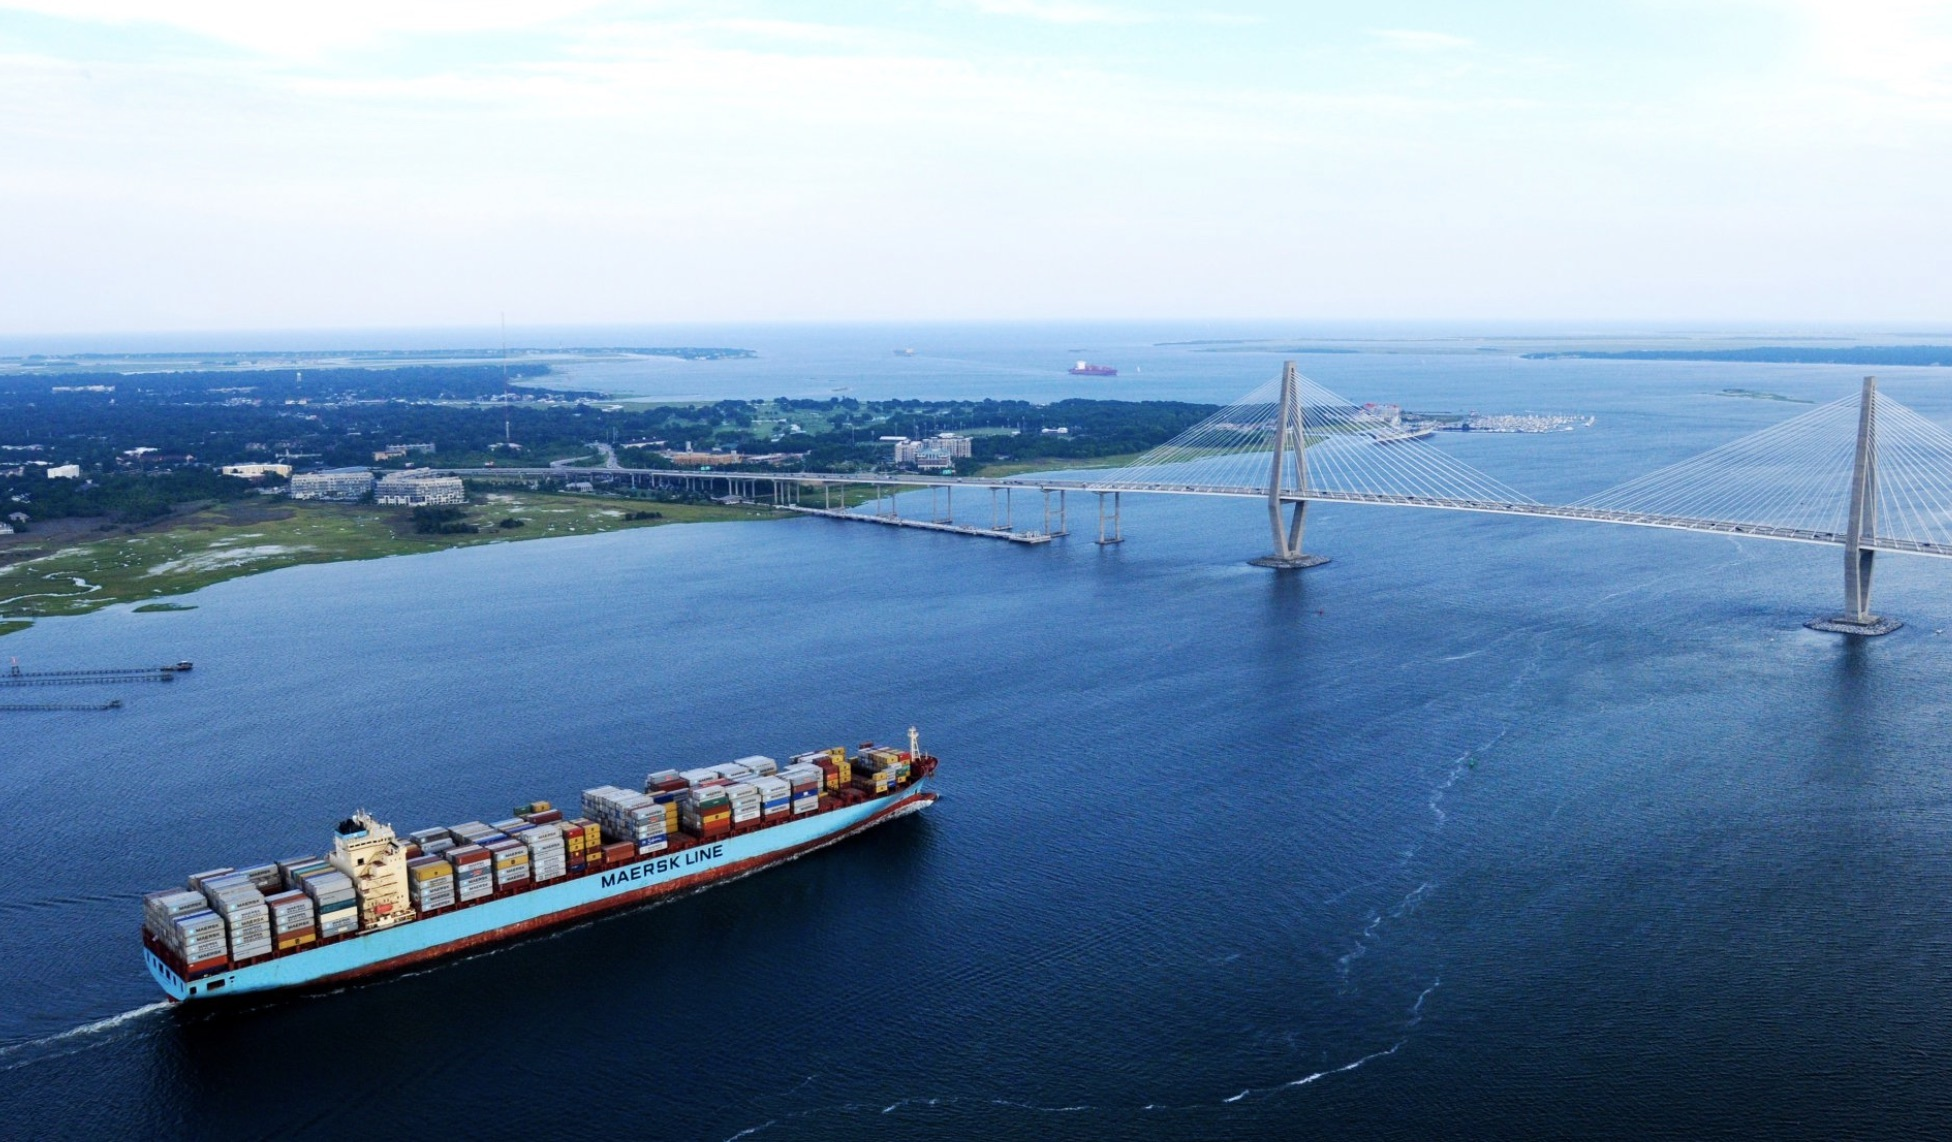 On May 24, 2017, the U.S. Army Corps of Engineers  announced it has allocated $17.5 million for the Charleston Harbor Deepening Project.